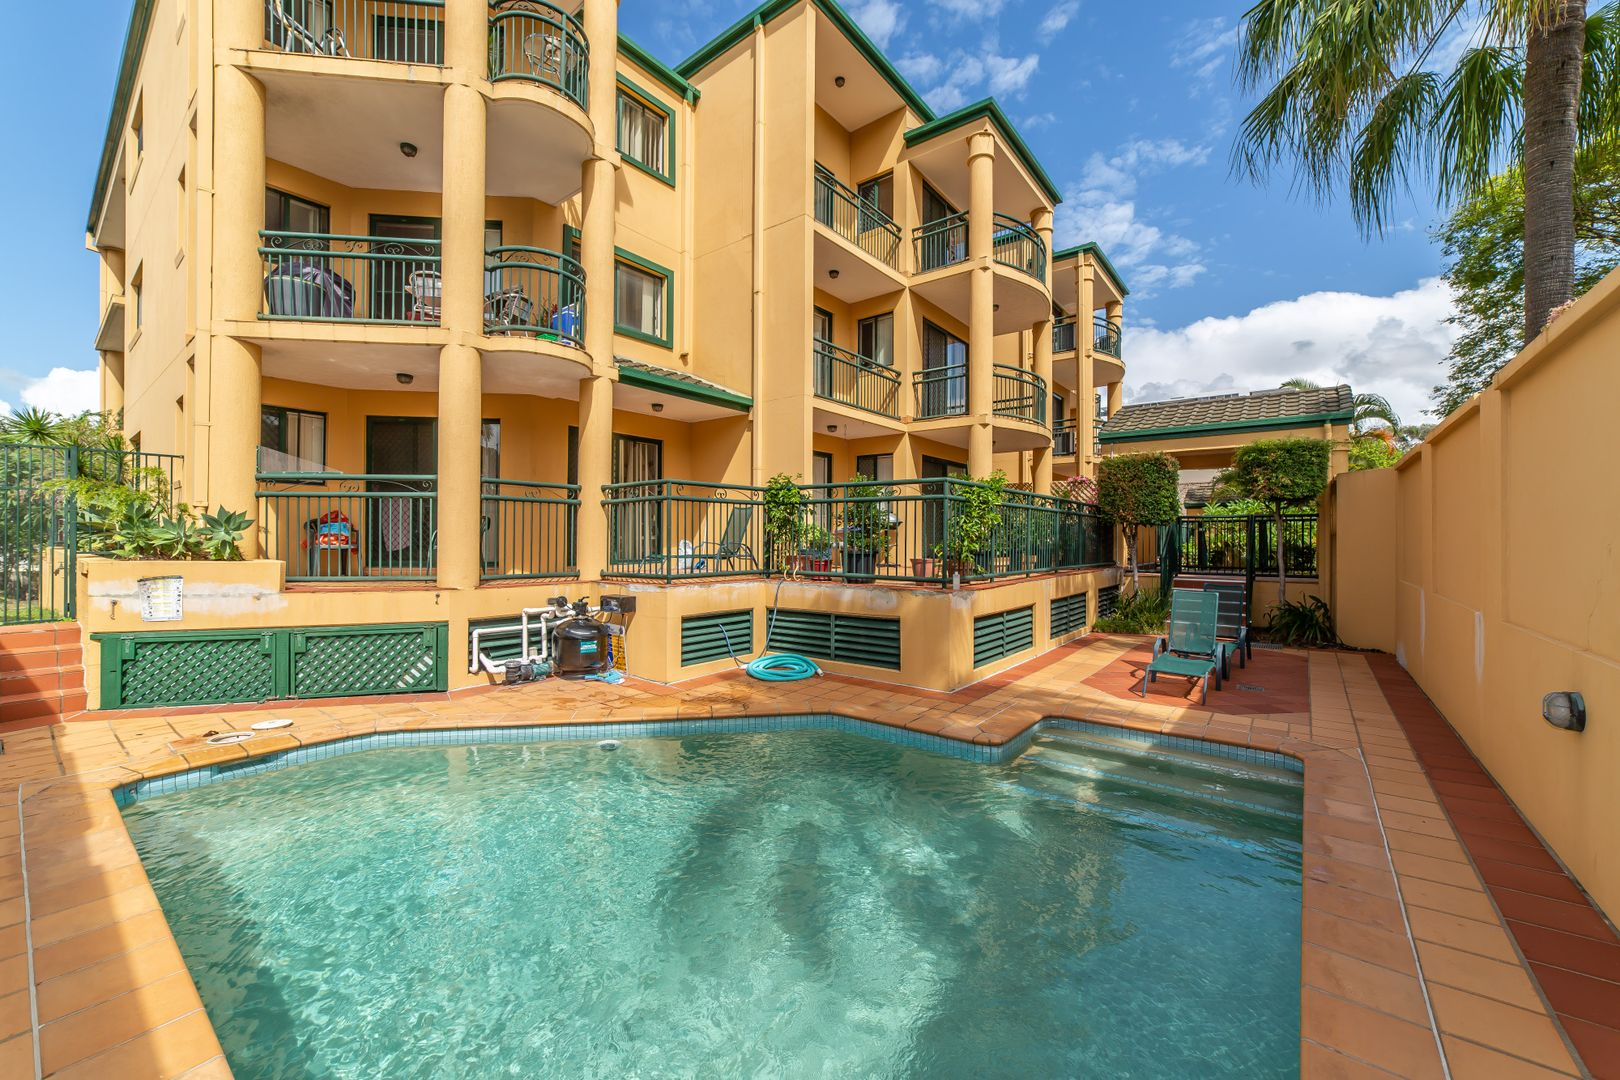 22/10-12 Spendelove Avenue, Southport QLD 4215, Image 0